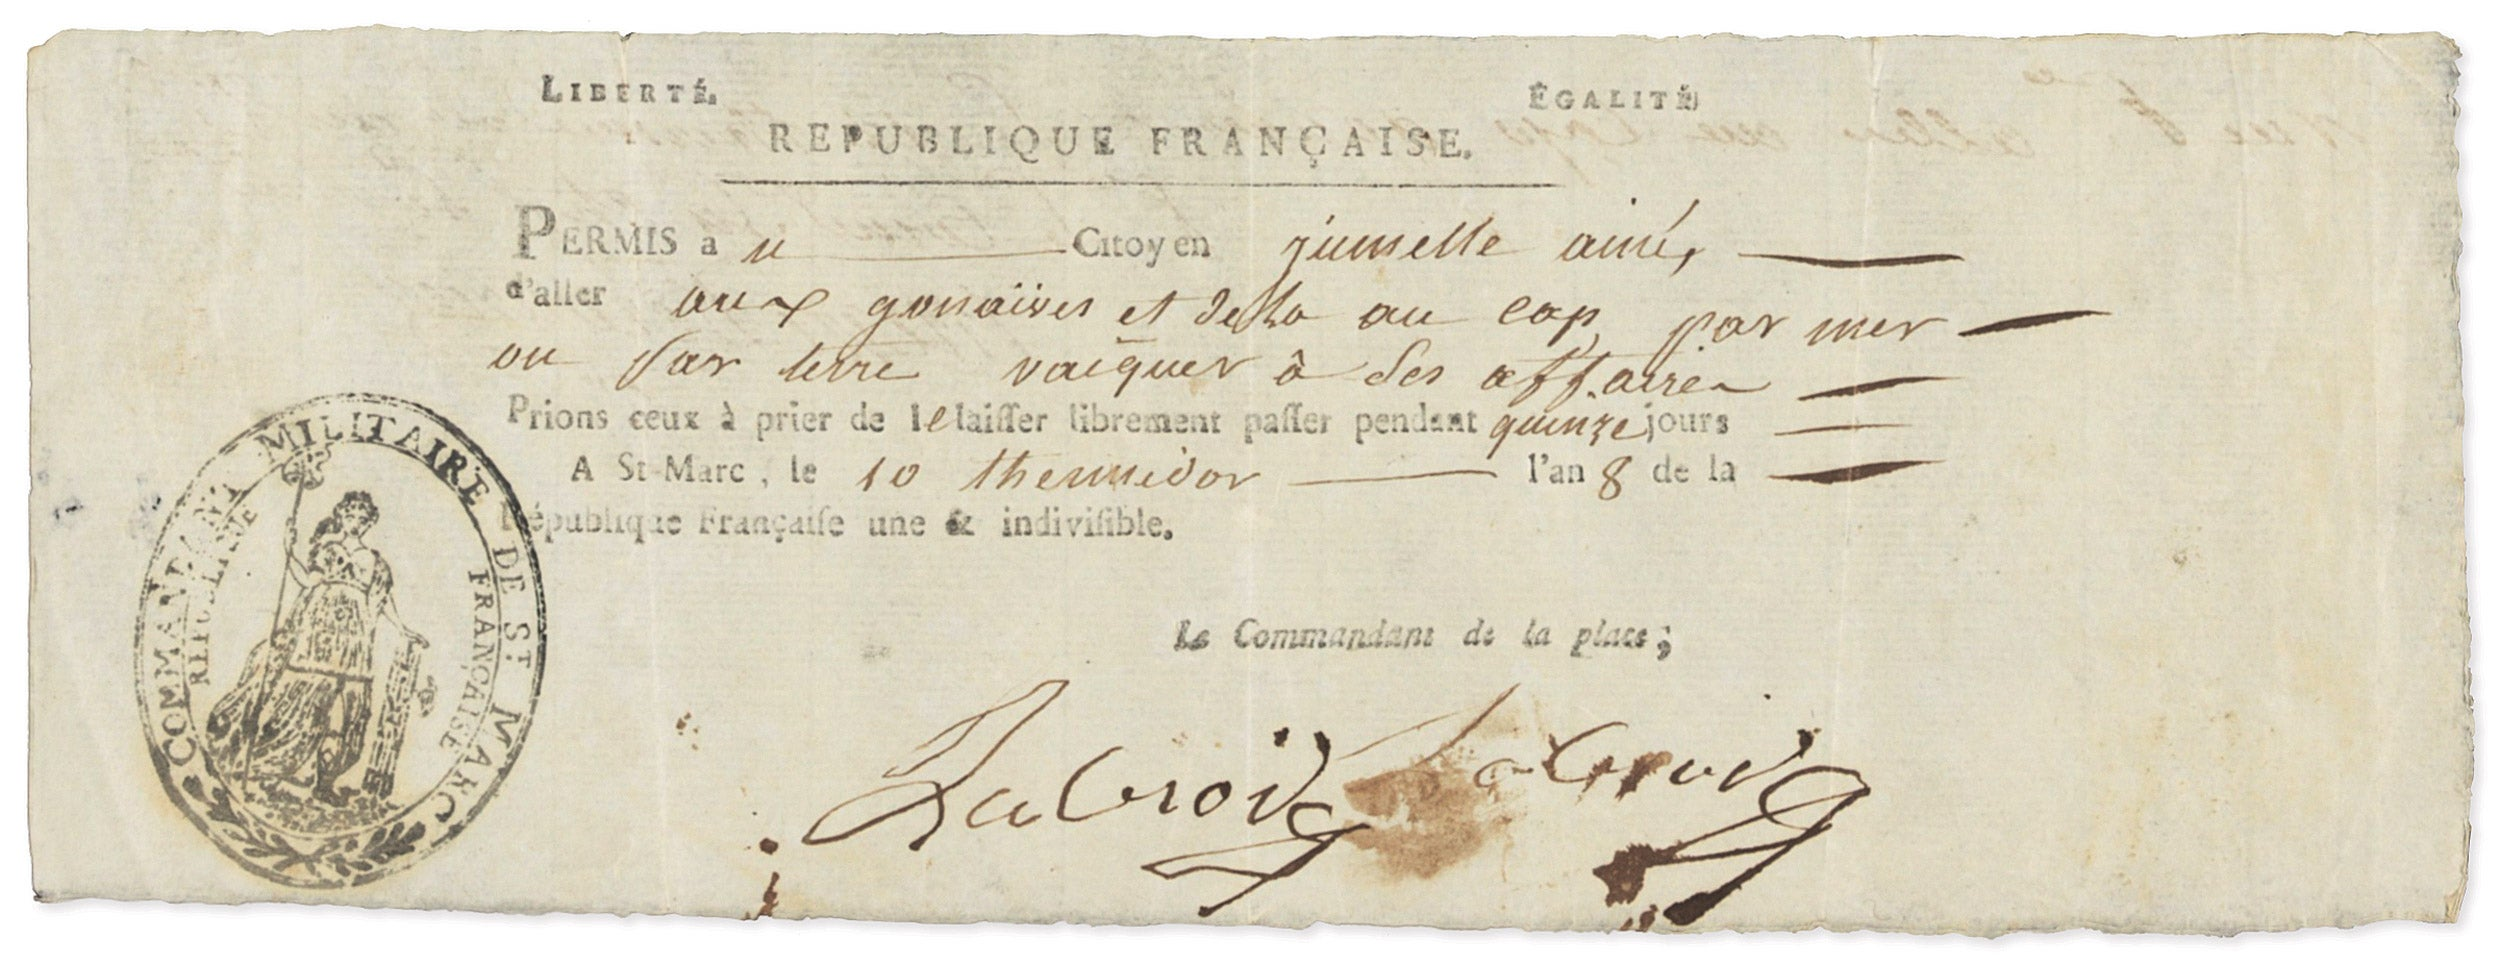 An 1800 permit to travel around the French colony of Saint-Domingue (now Haiti).